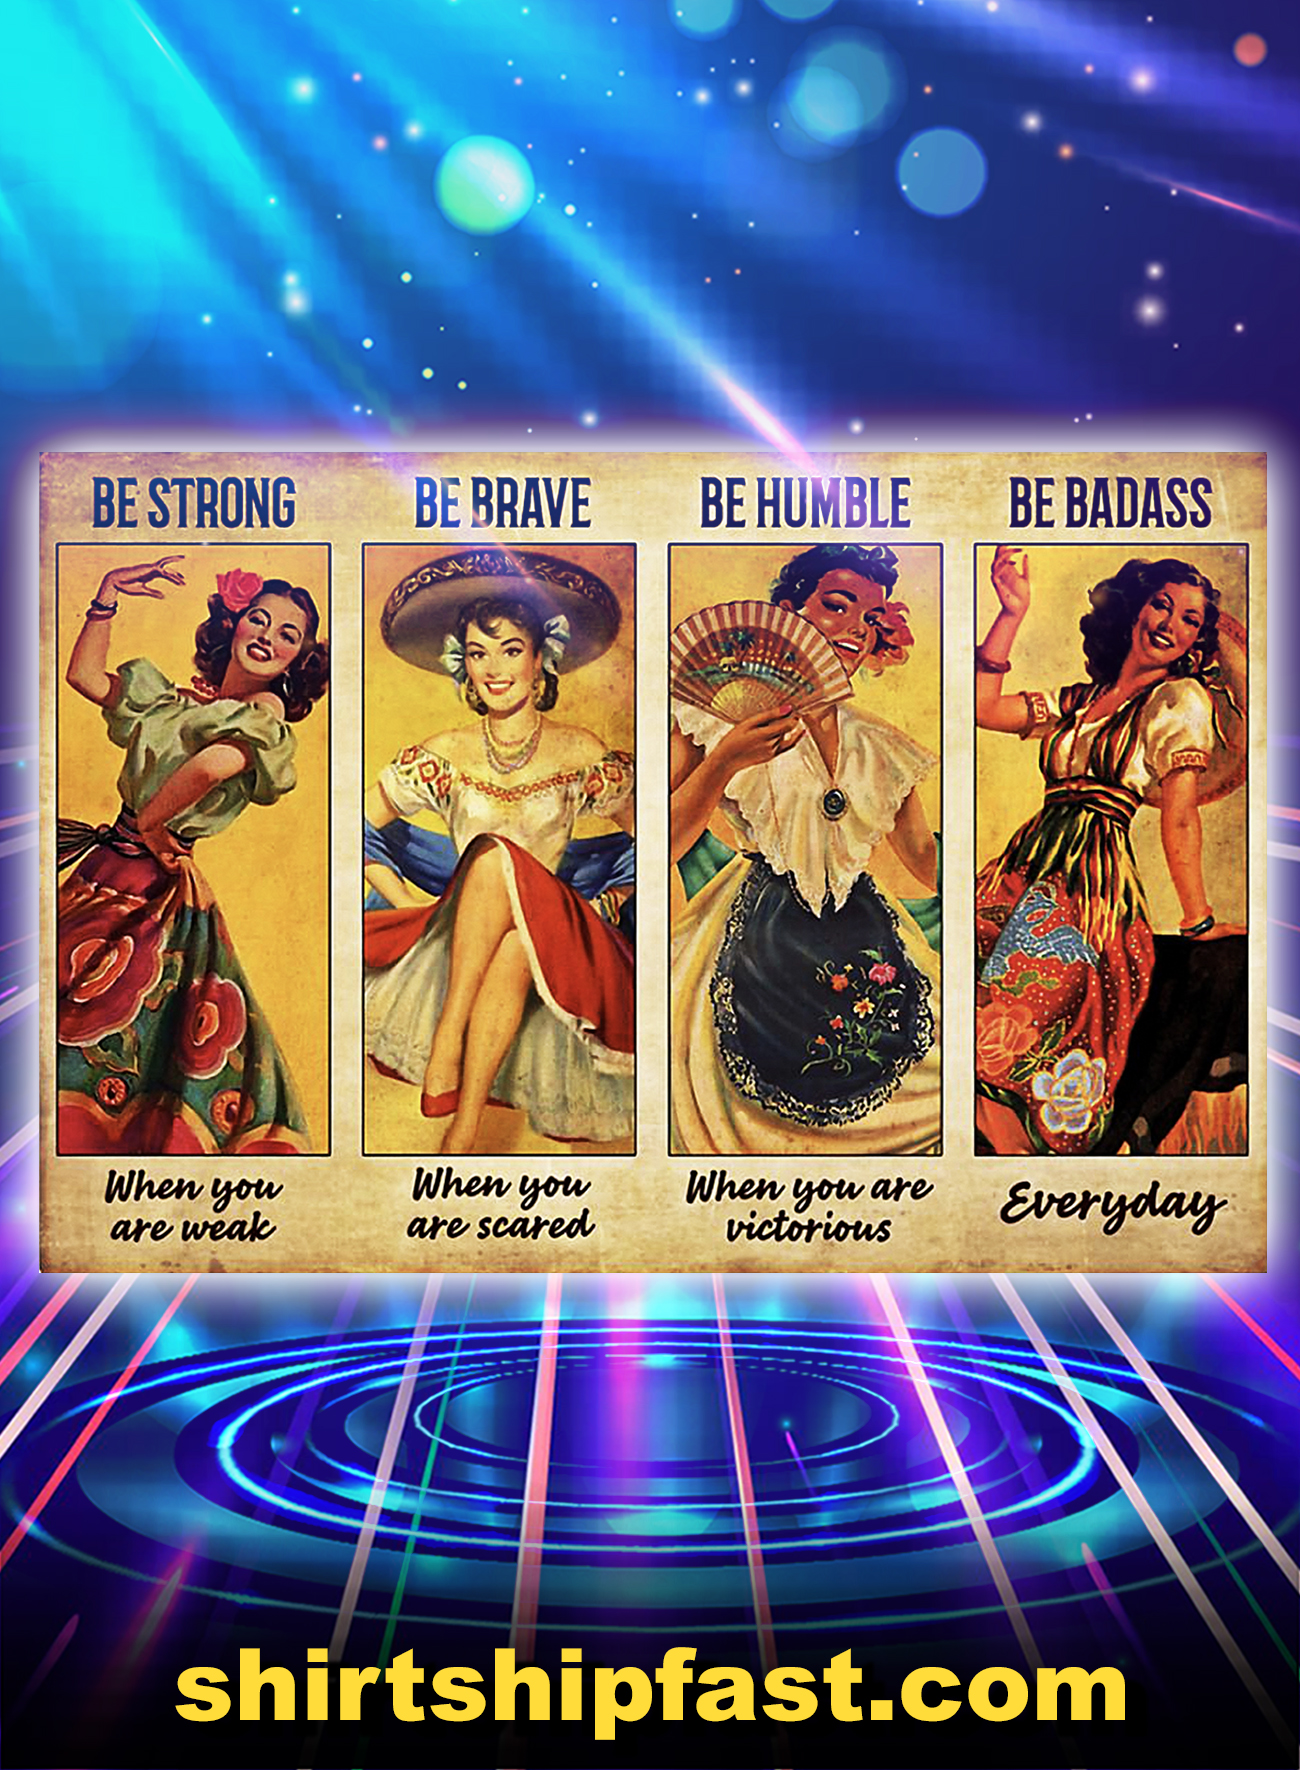 Women Mexican Dancing be strong be brave be humble be badass poster - A4